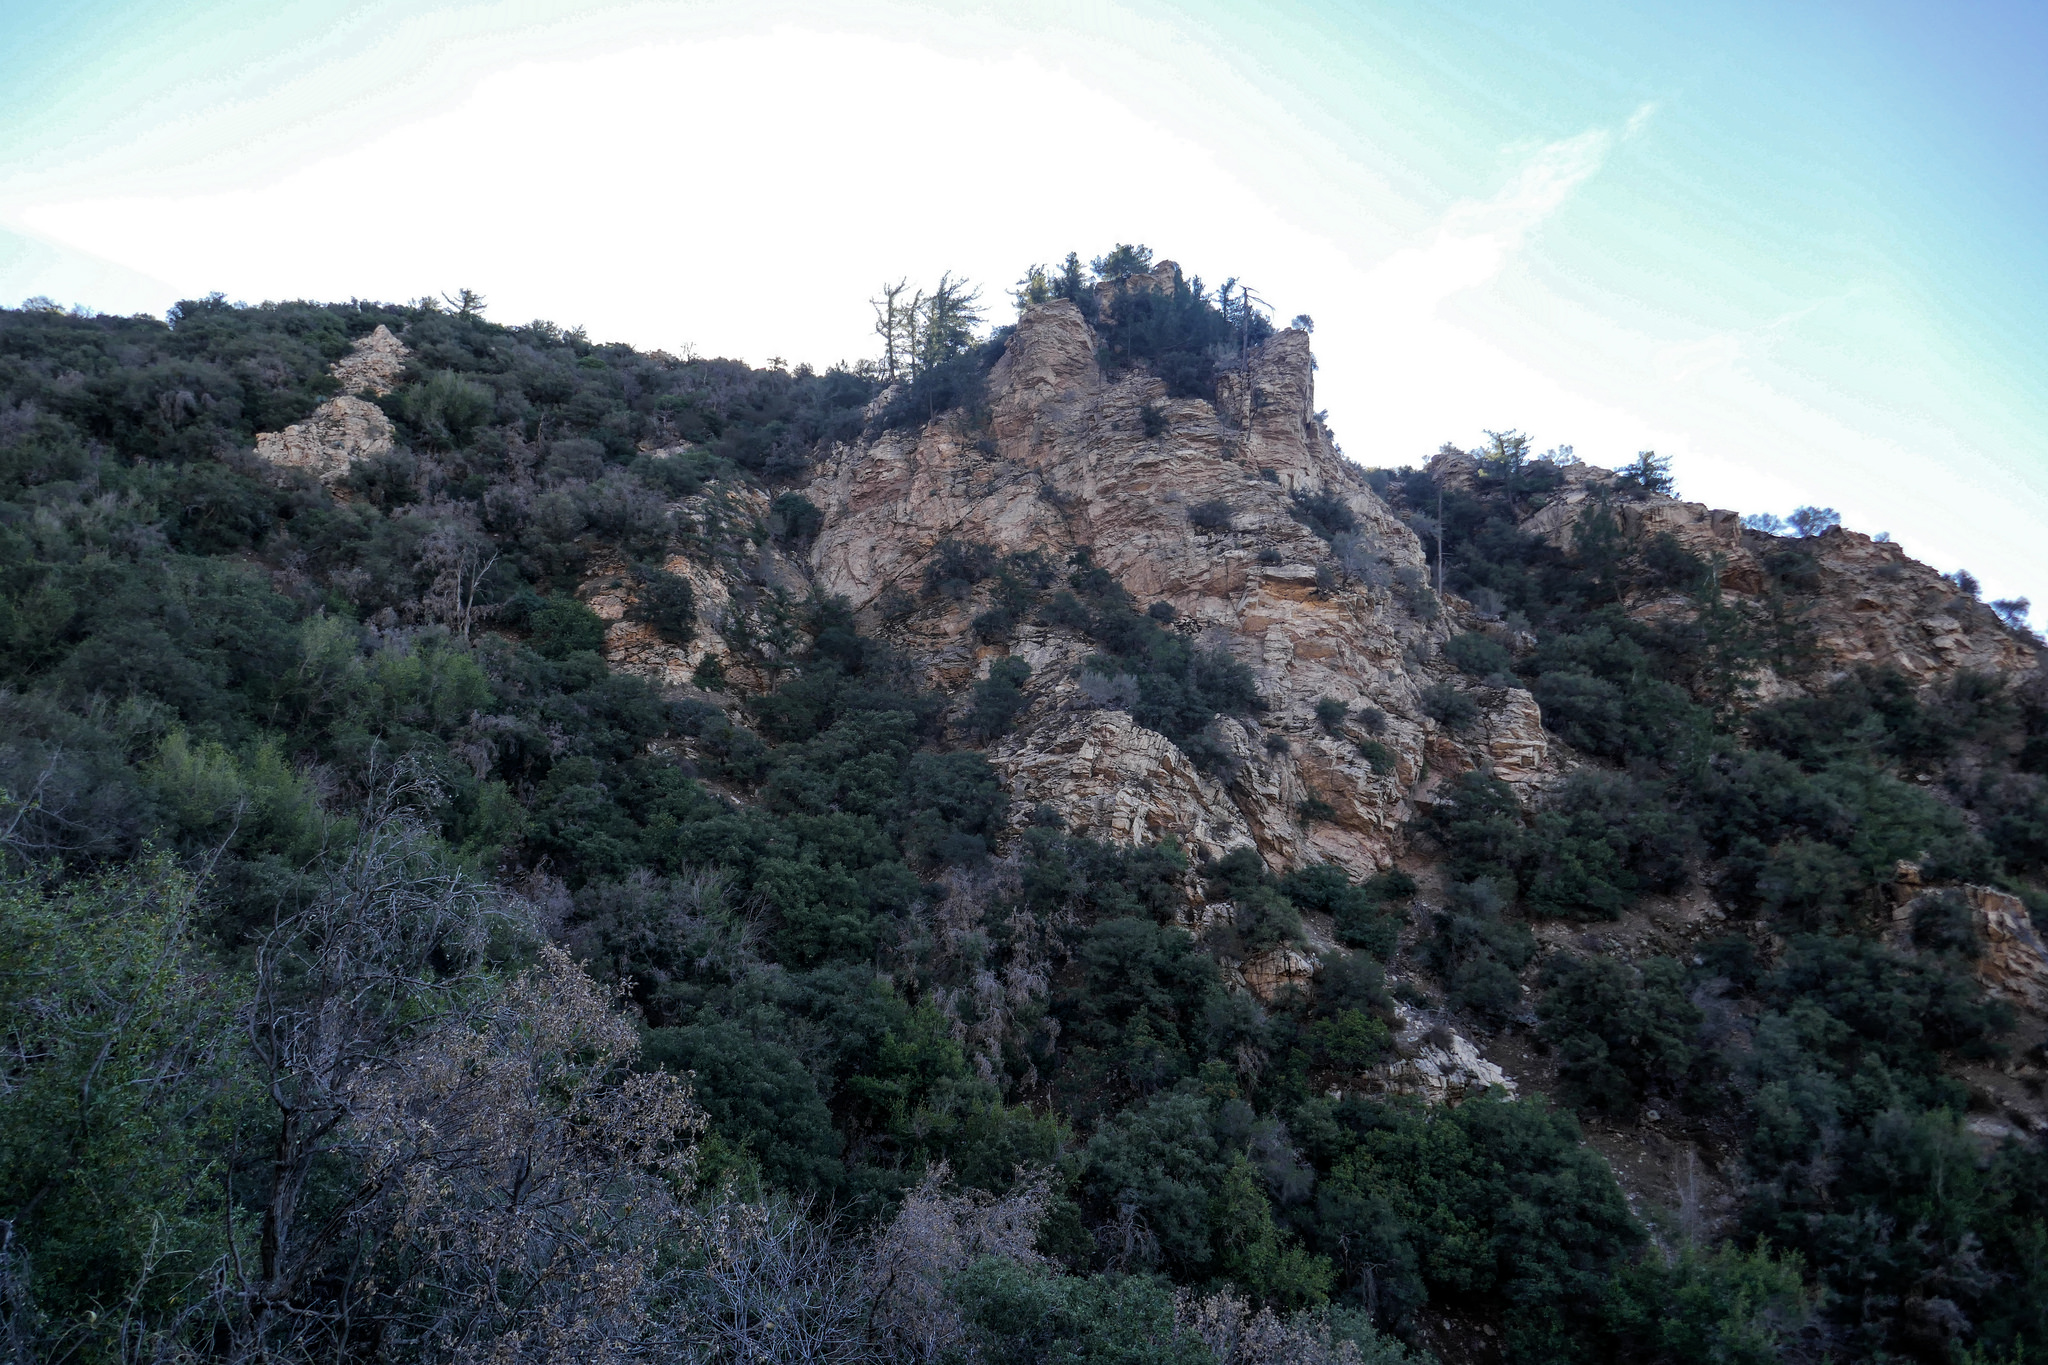 """This rock formation kind of looks like a castle. I wonder if that's why it's called """"Castle Canyon""""."""